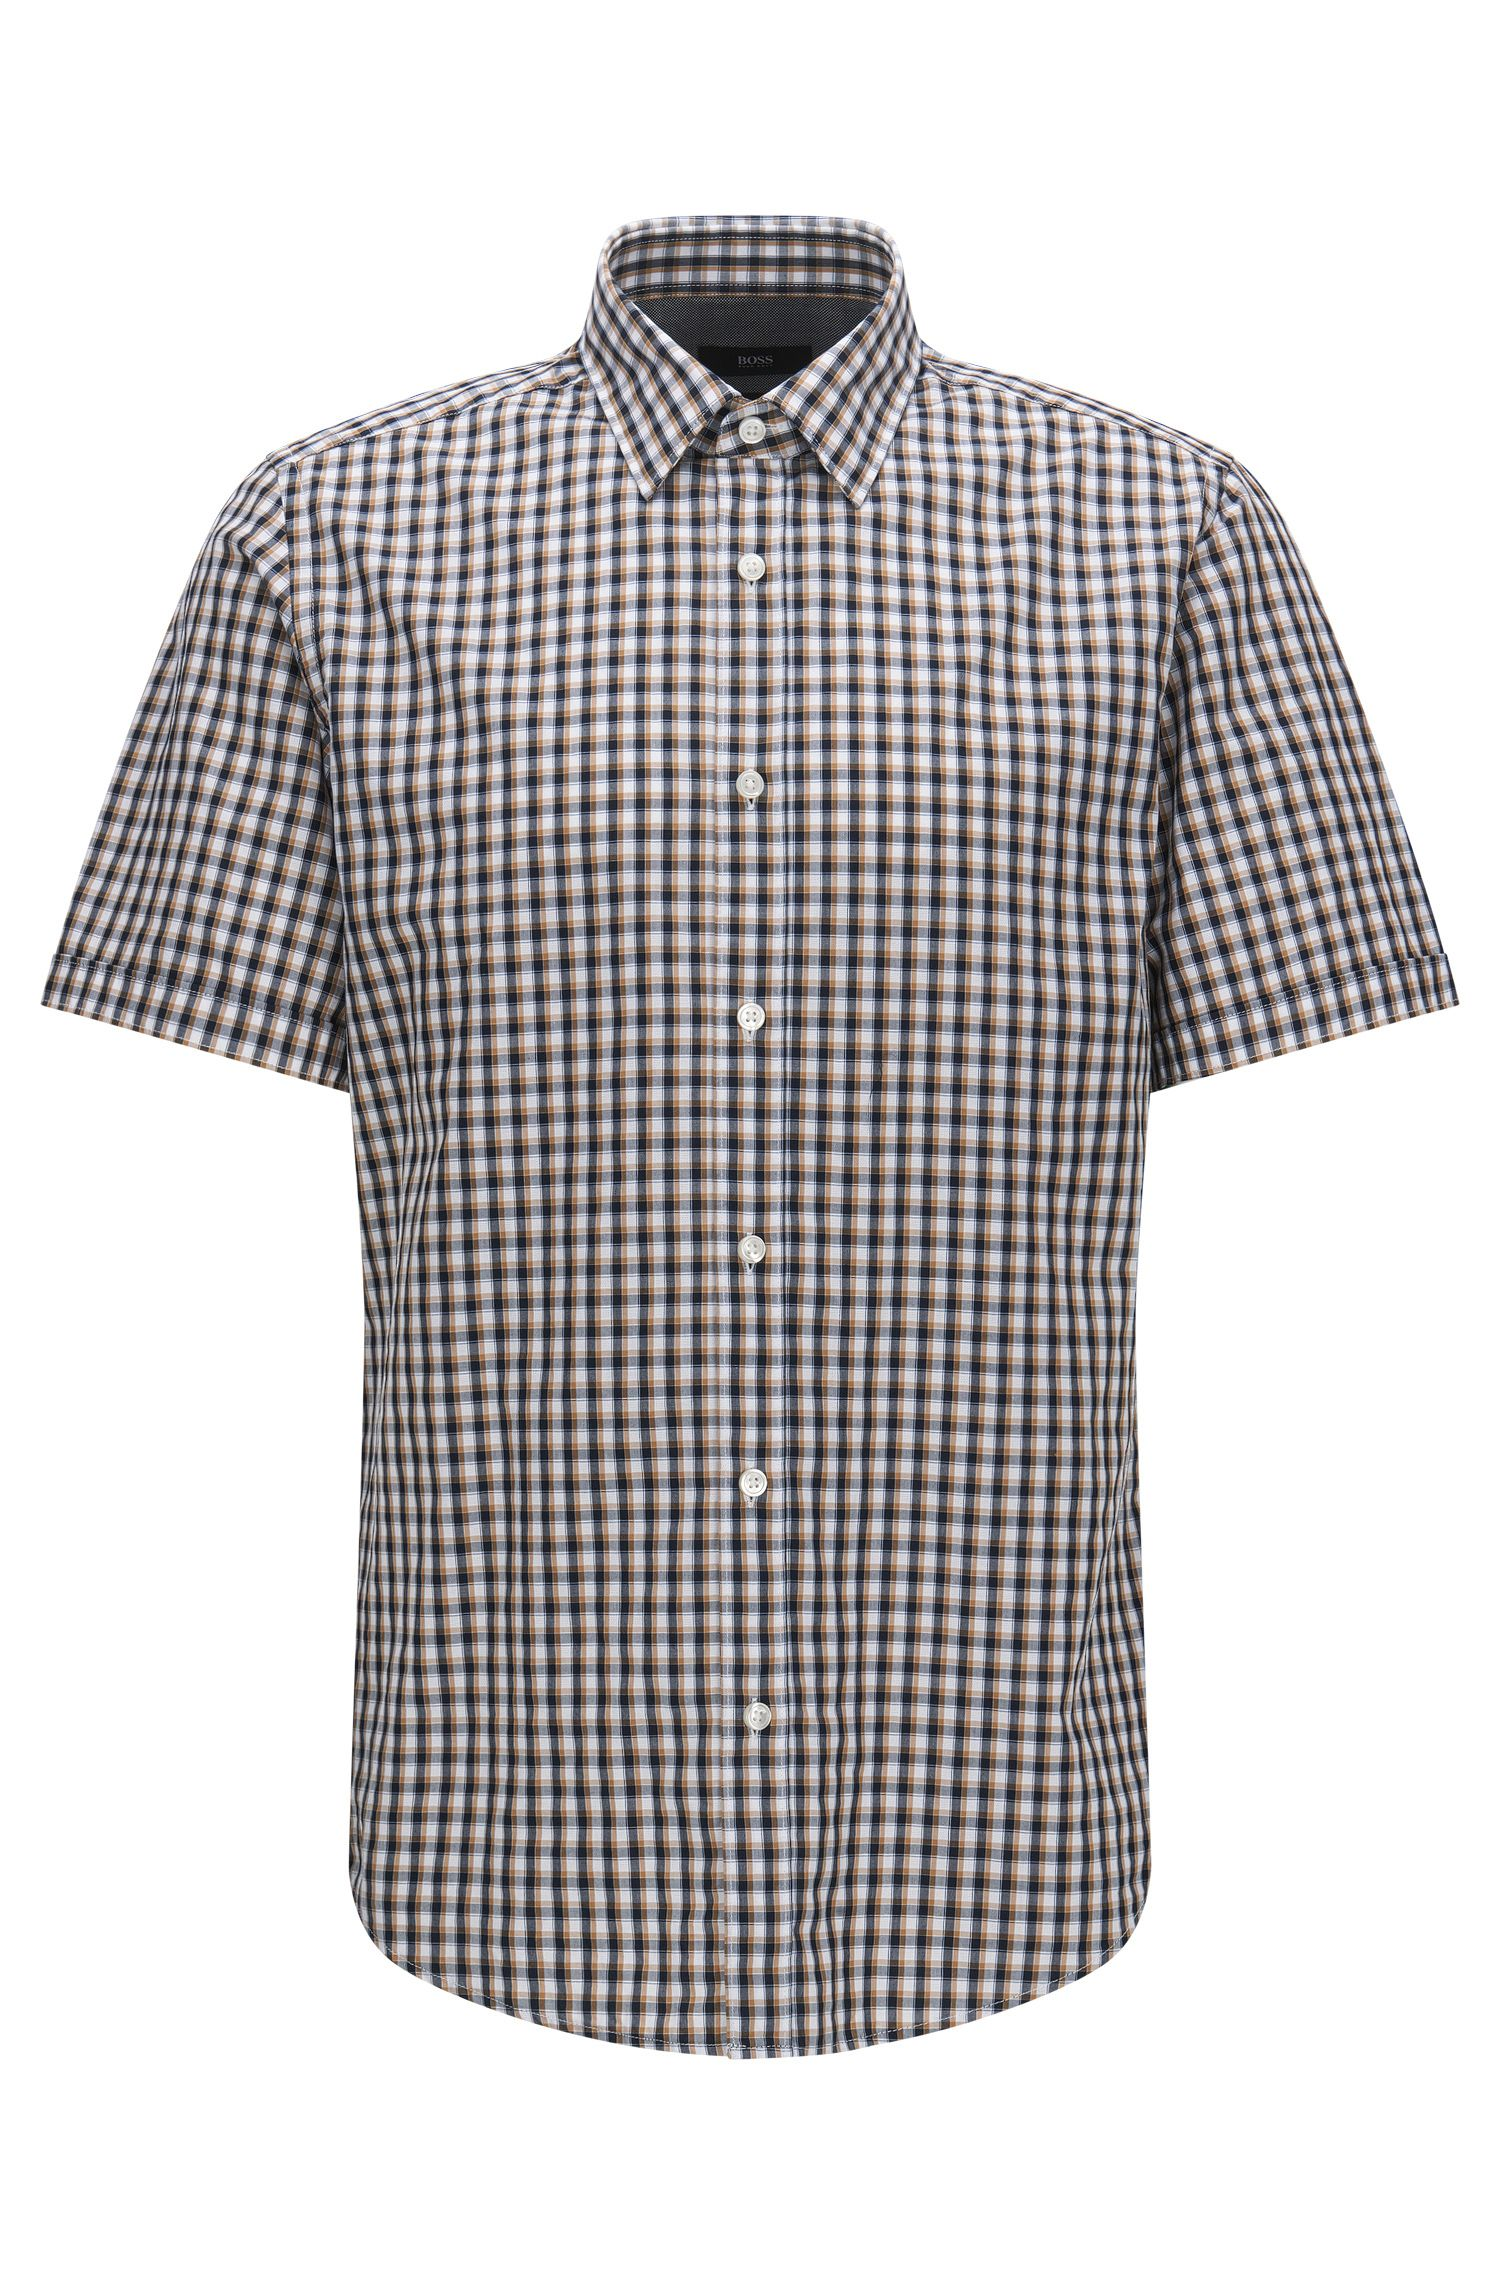 Check Cotton Button Down Shirt, Regular Fit | Luka